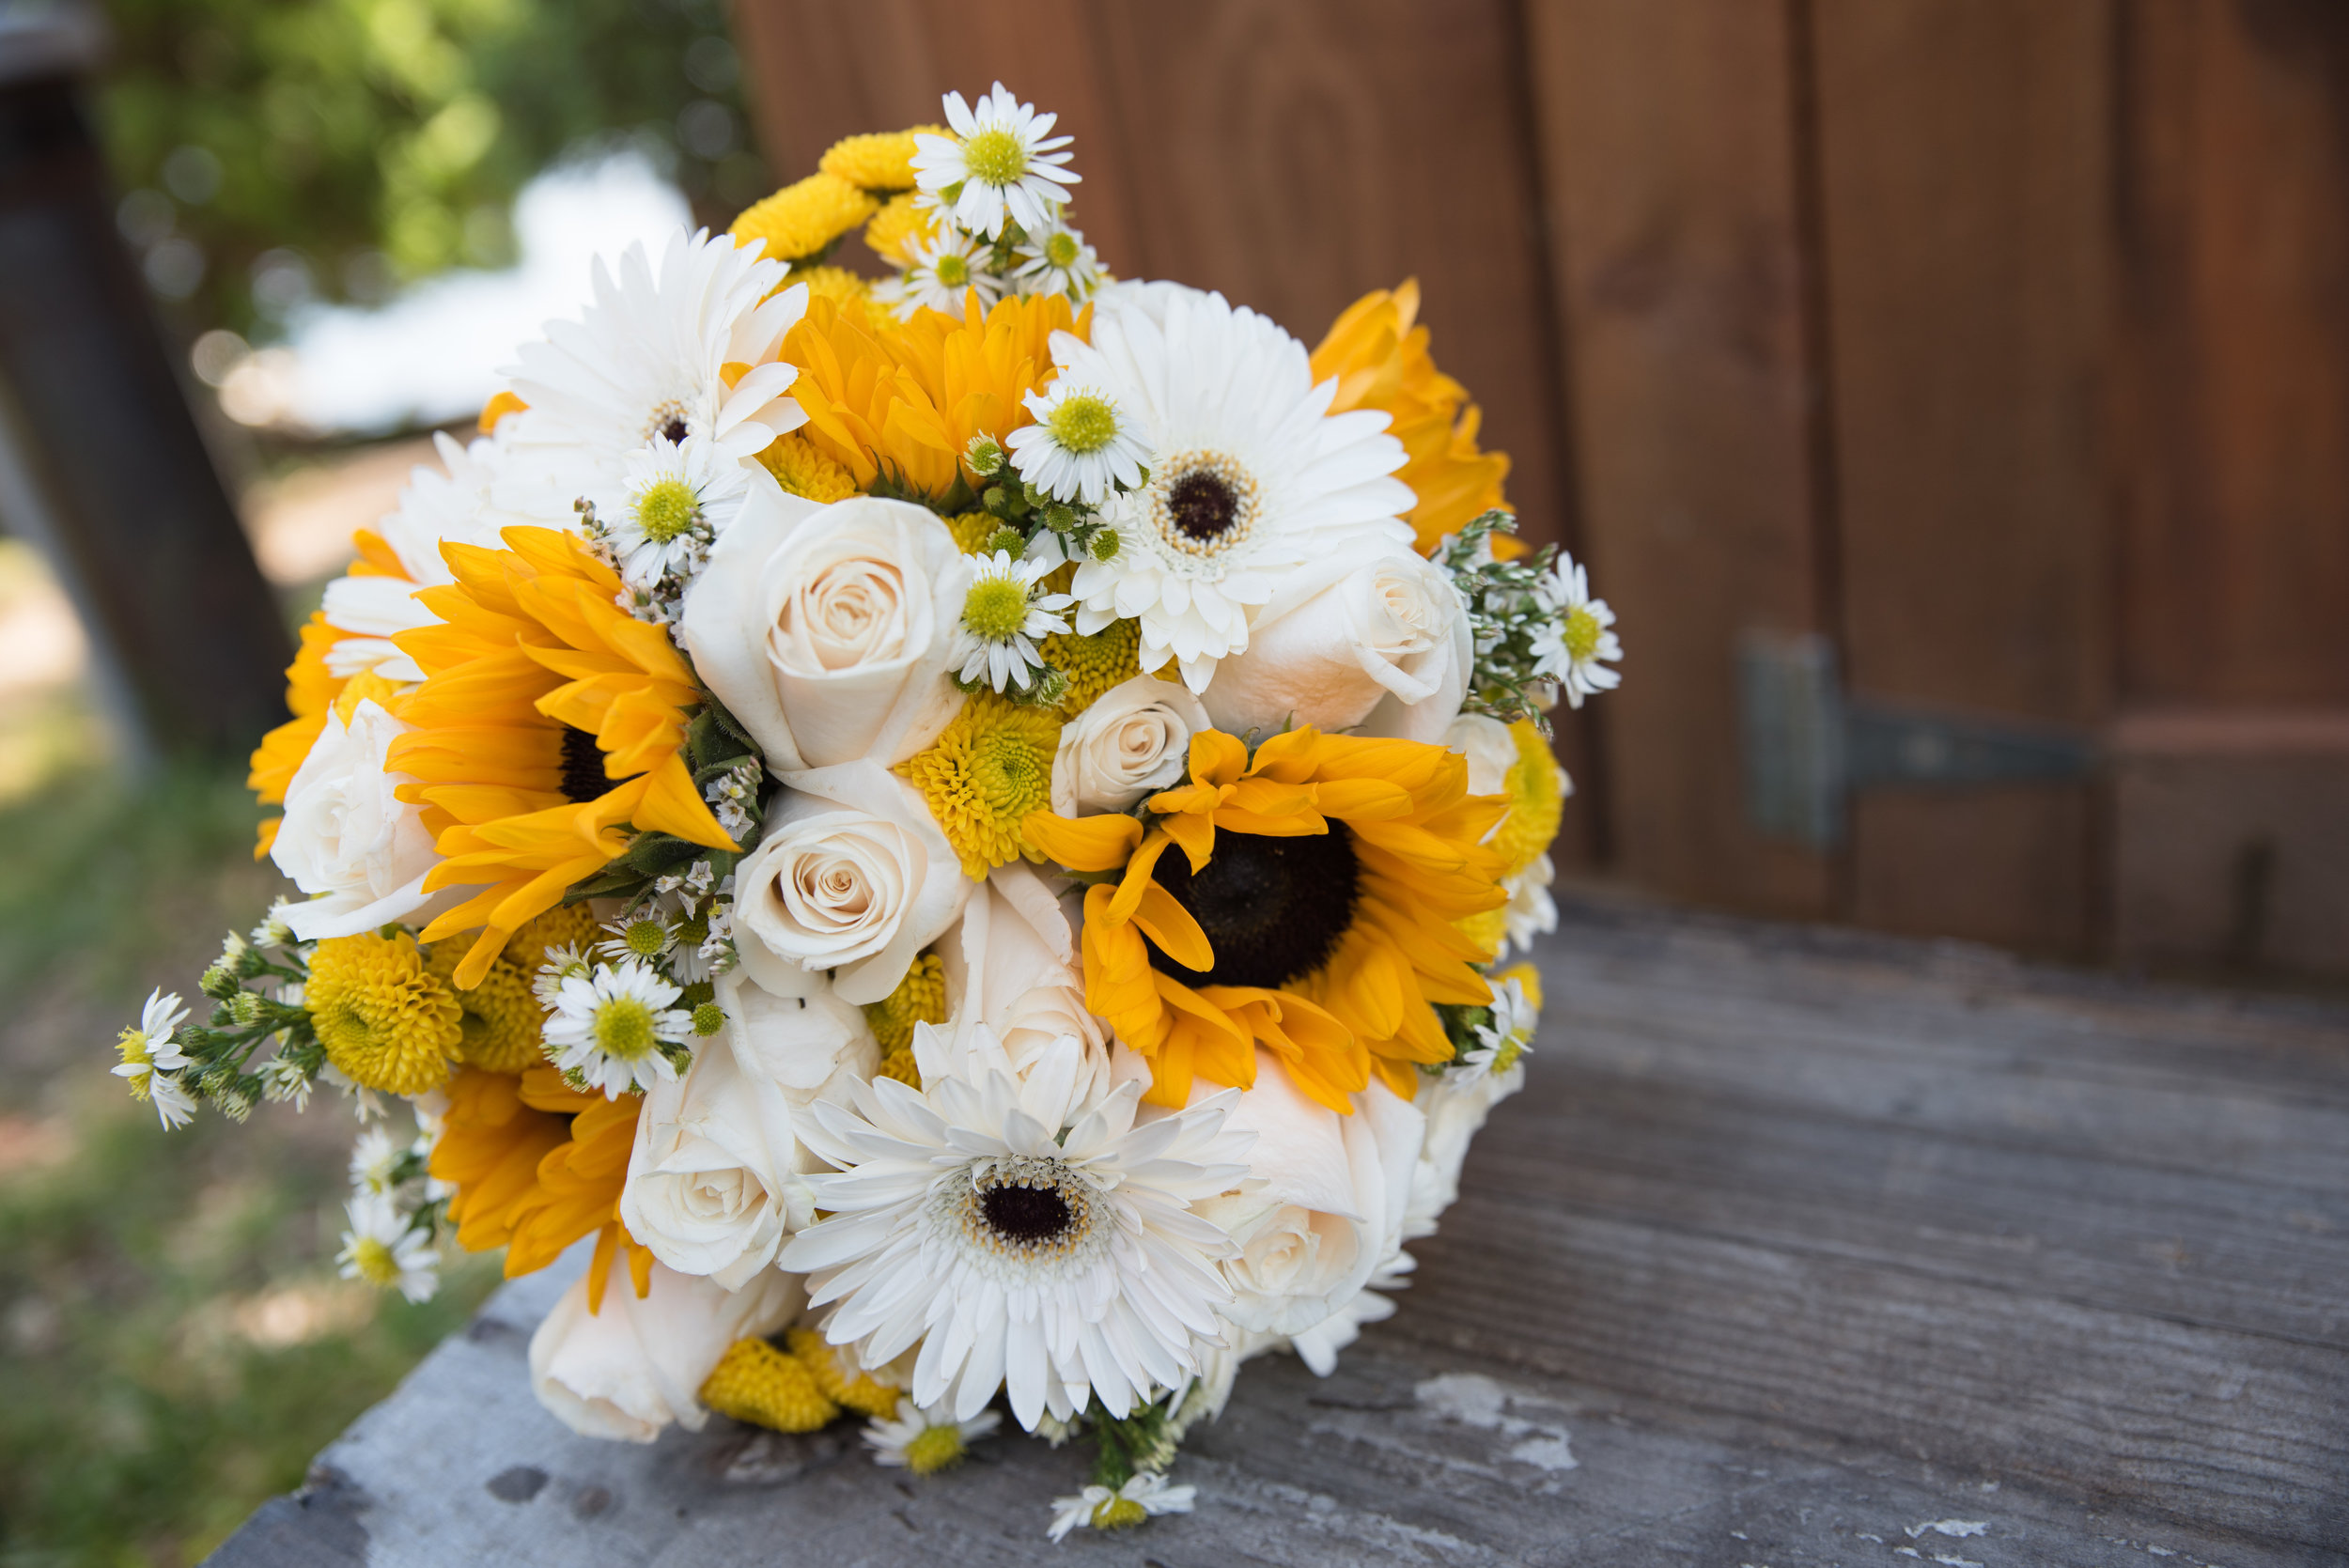 Lisa and Nate, weddings, Fall, Autumn, marriage, nature, October, Brian, Latham, wedding photography, rustic, woodsy, woods, DIY, Connecticut, Massachusetts, lake, sunflower, pond, yellow, simple, gorgeous, bouquet